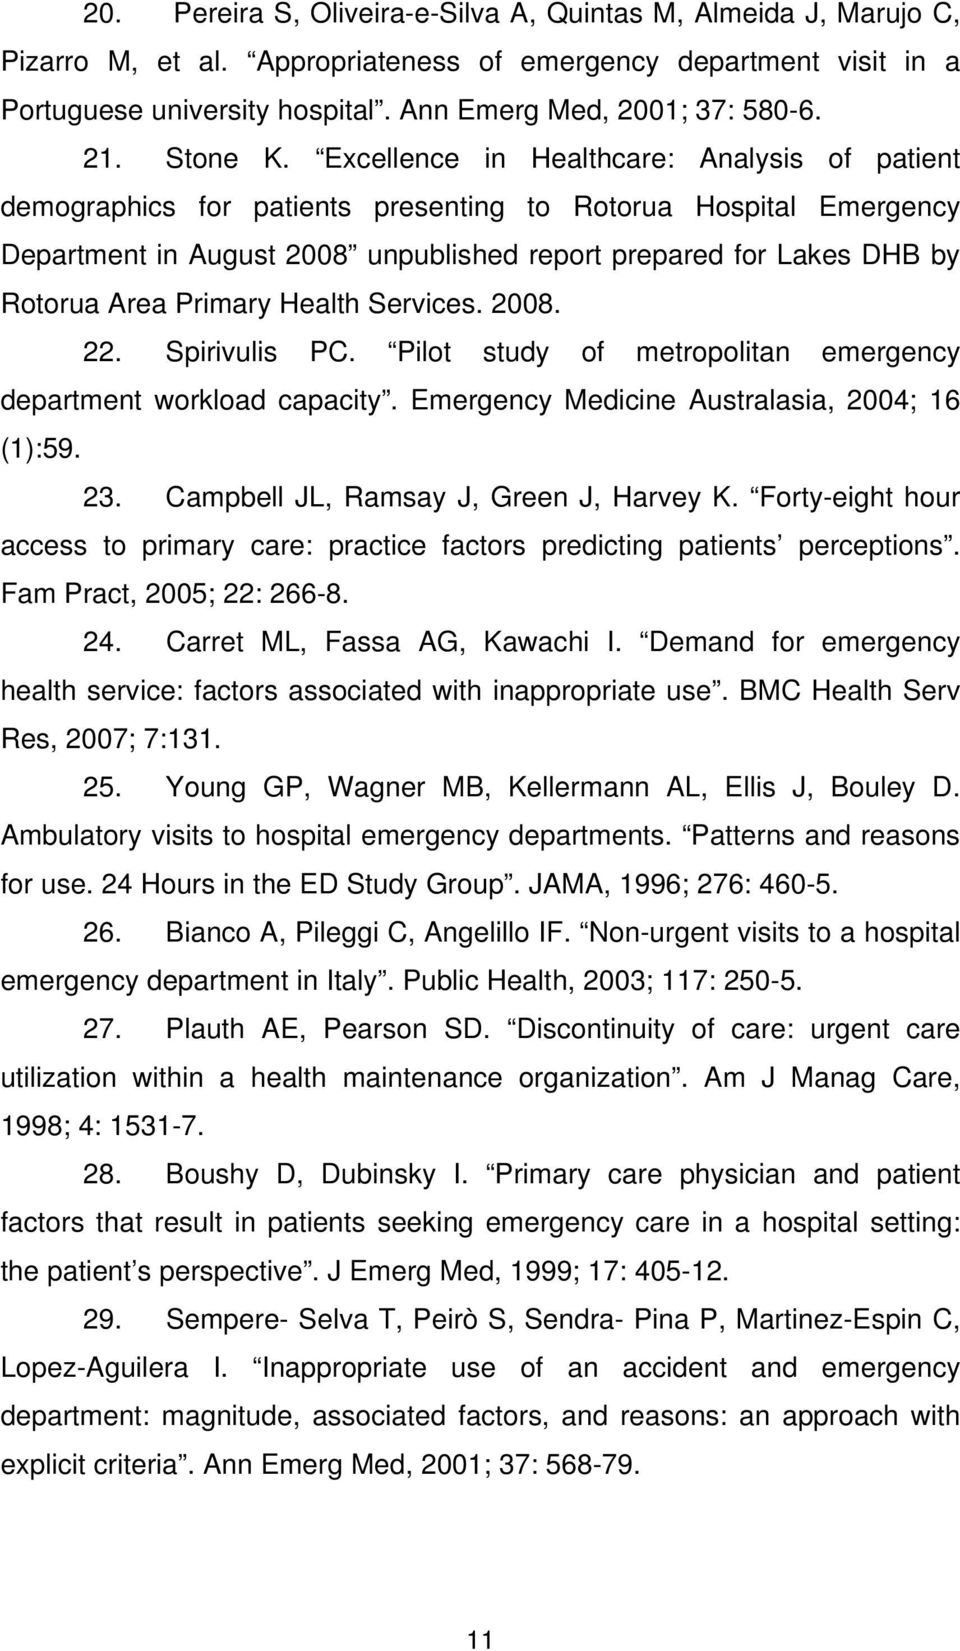 Excellence in Healthcare: Analysis of patient demographics for patients presenting to Rotorua Hospital Emergency Department in August 2008 unpublished report prepared for Lakes DHB by Rotorua Area